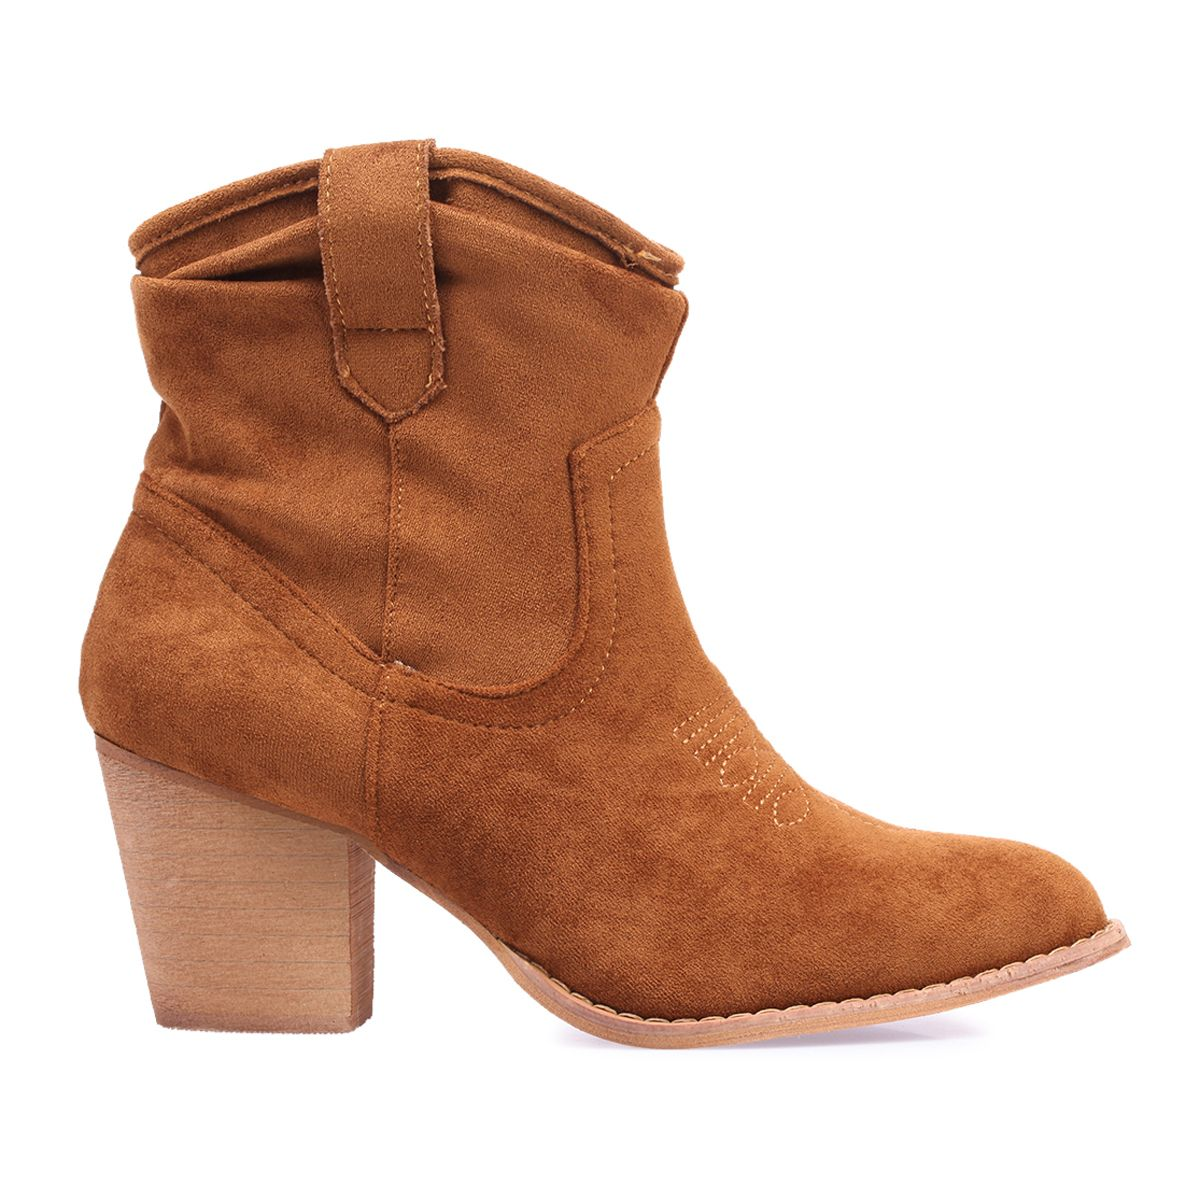 Bottines camel en suédine